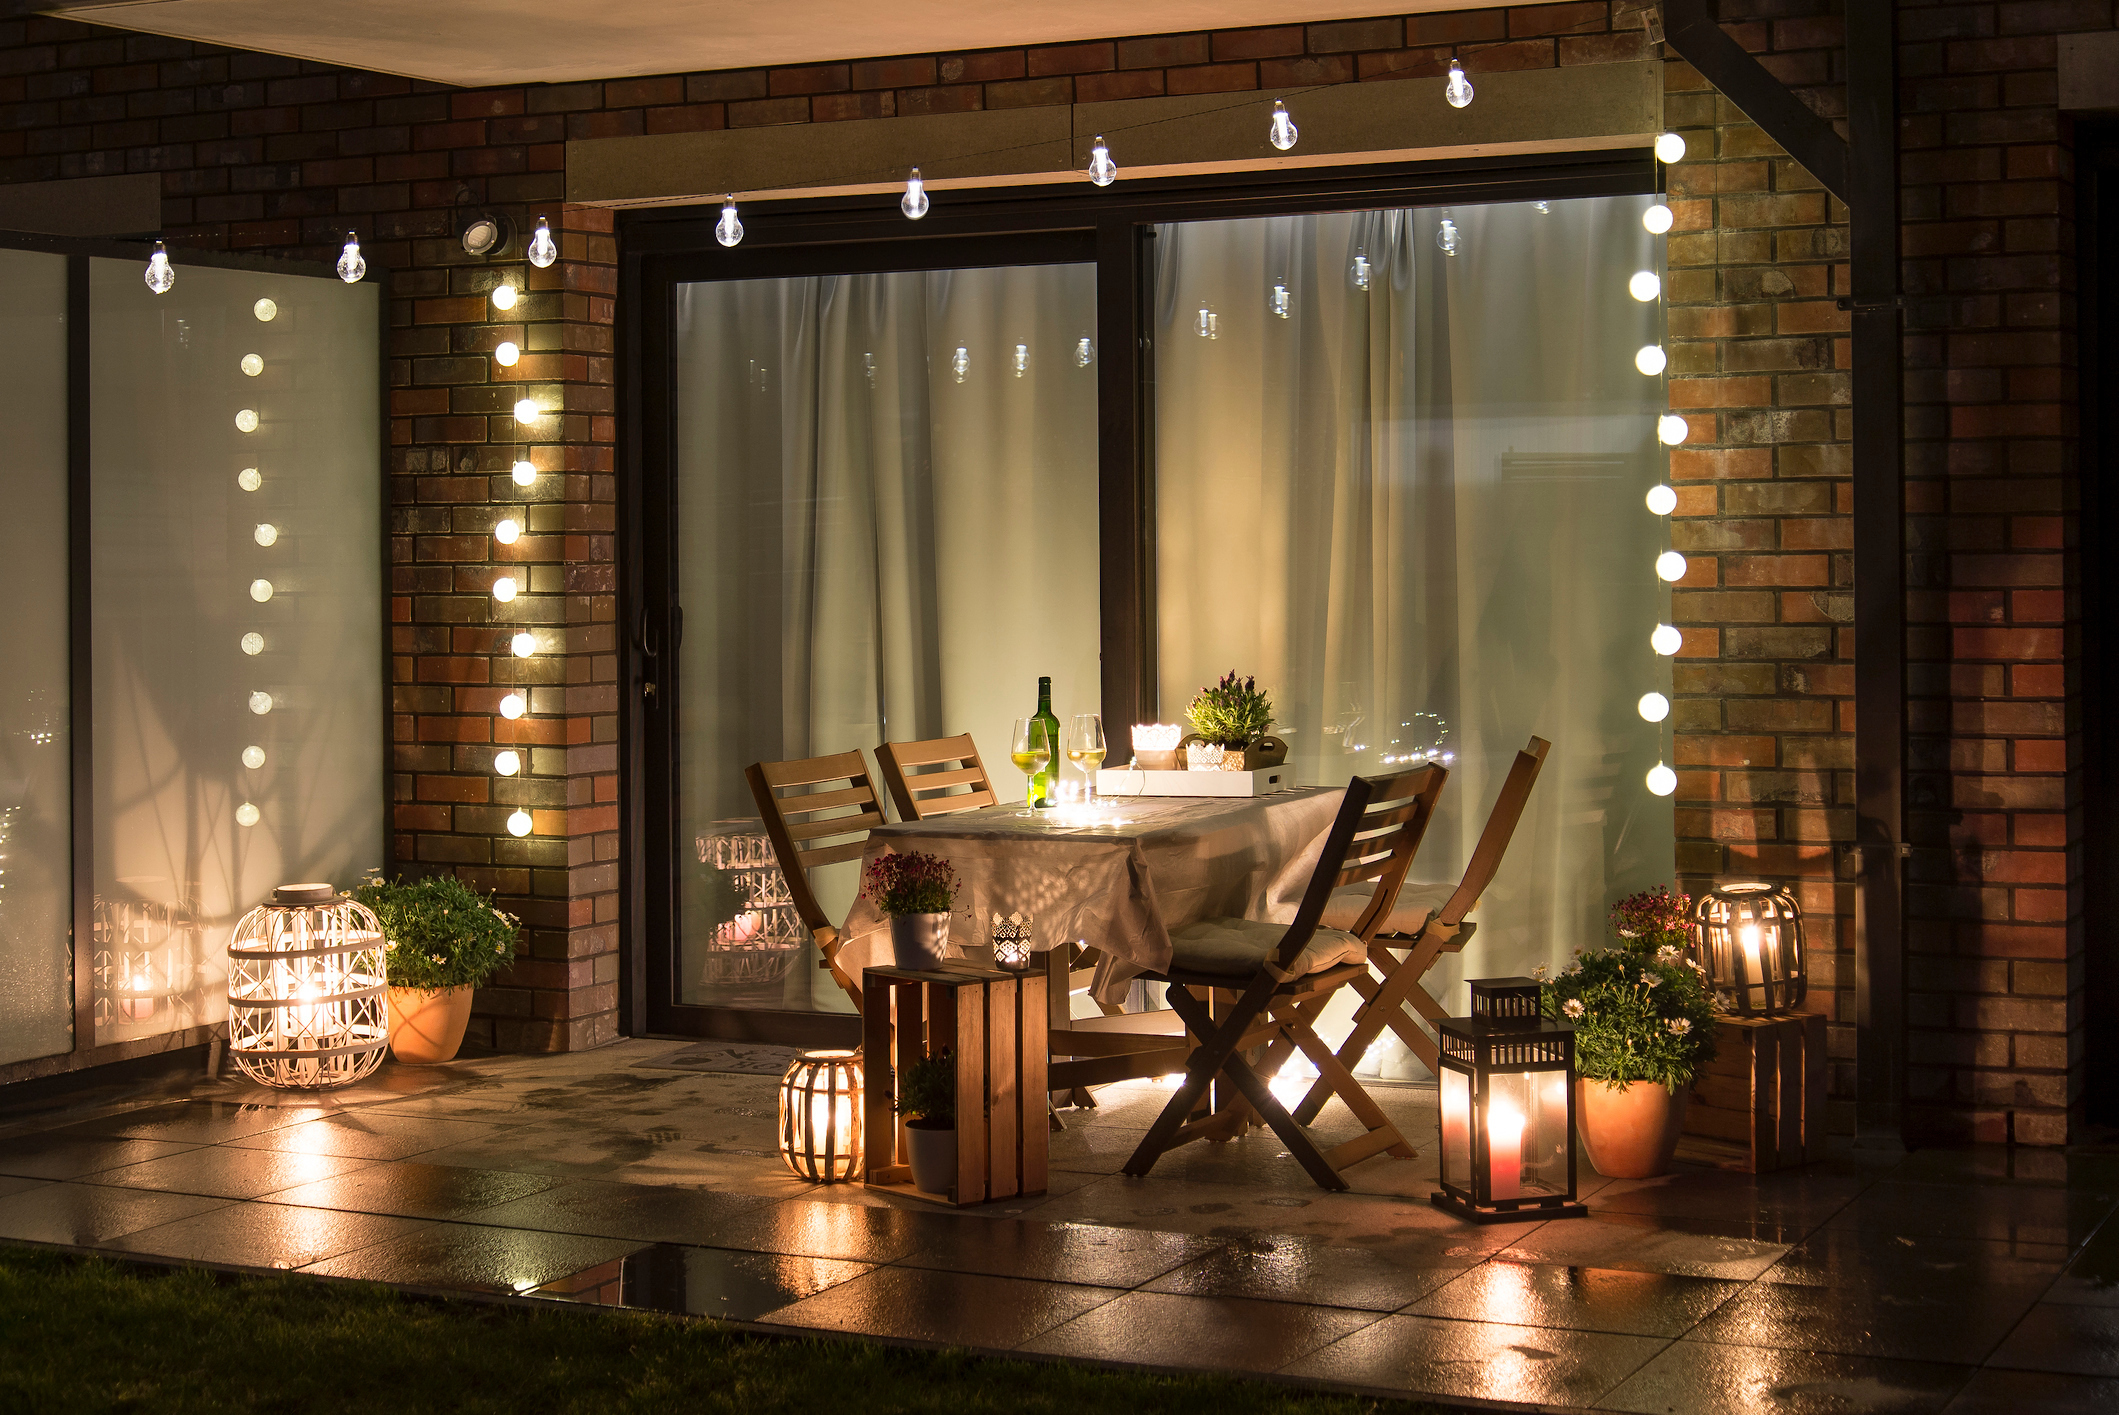 Summer evening terrace with candles, wine and lights, wet pavements